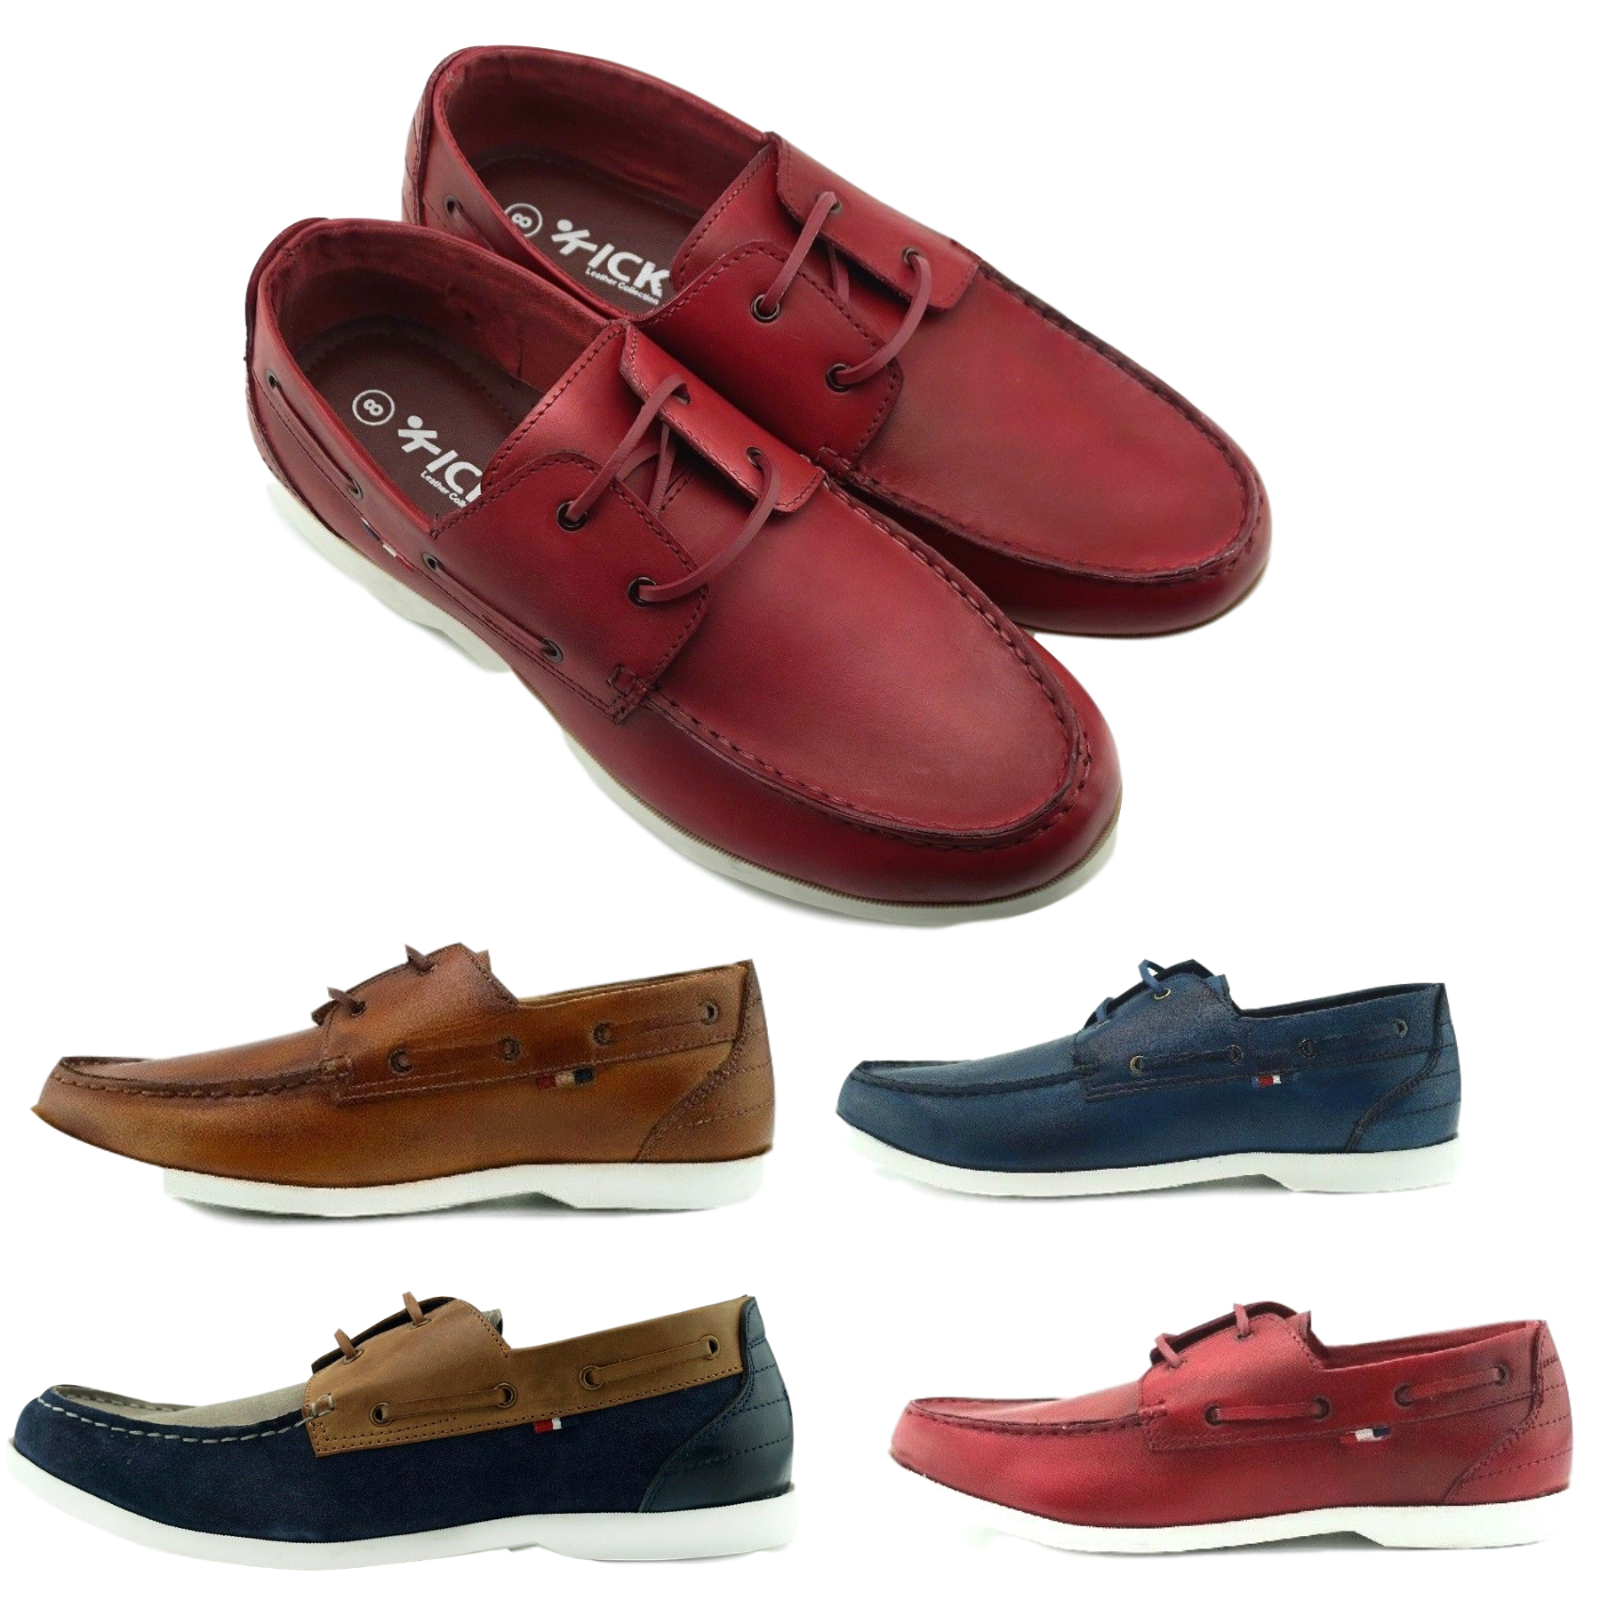 Mens Leather Casual Smart Lace Up Walking Work Moccasin Driving Boat Shoes Size